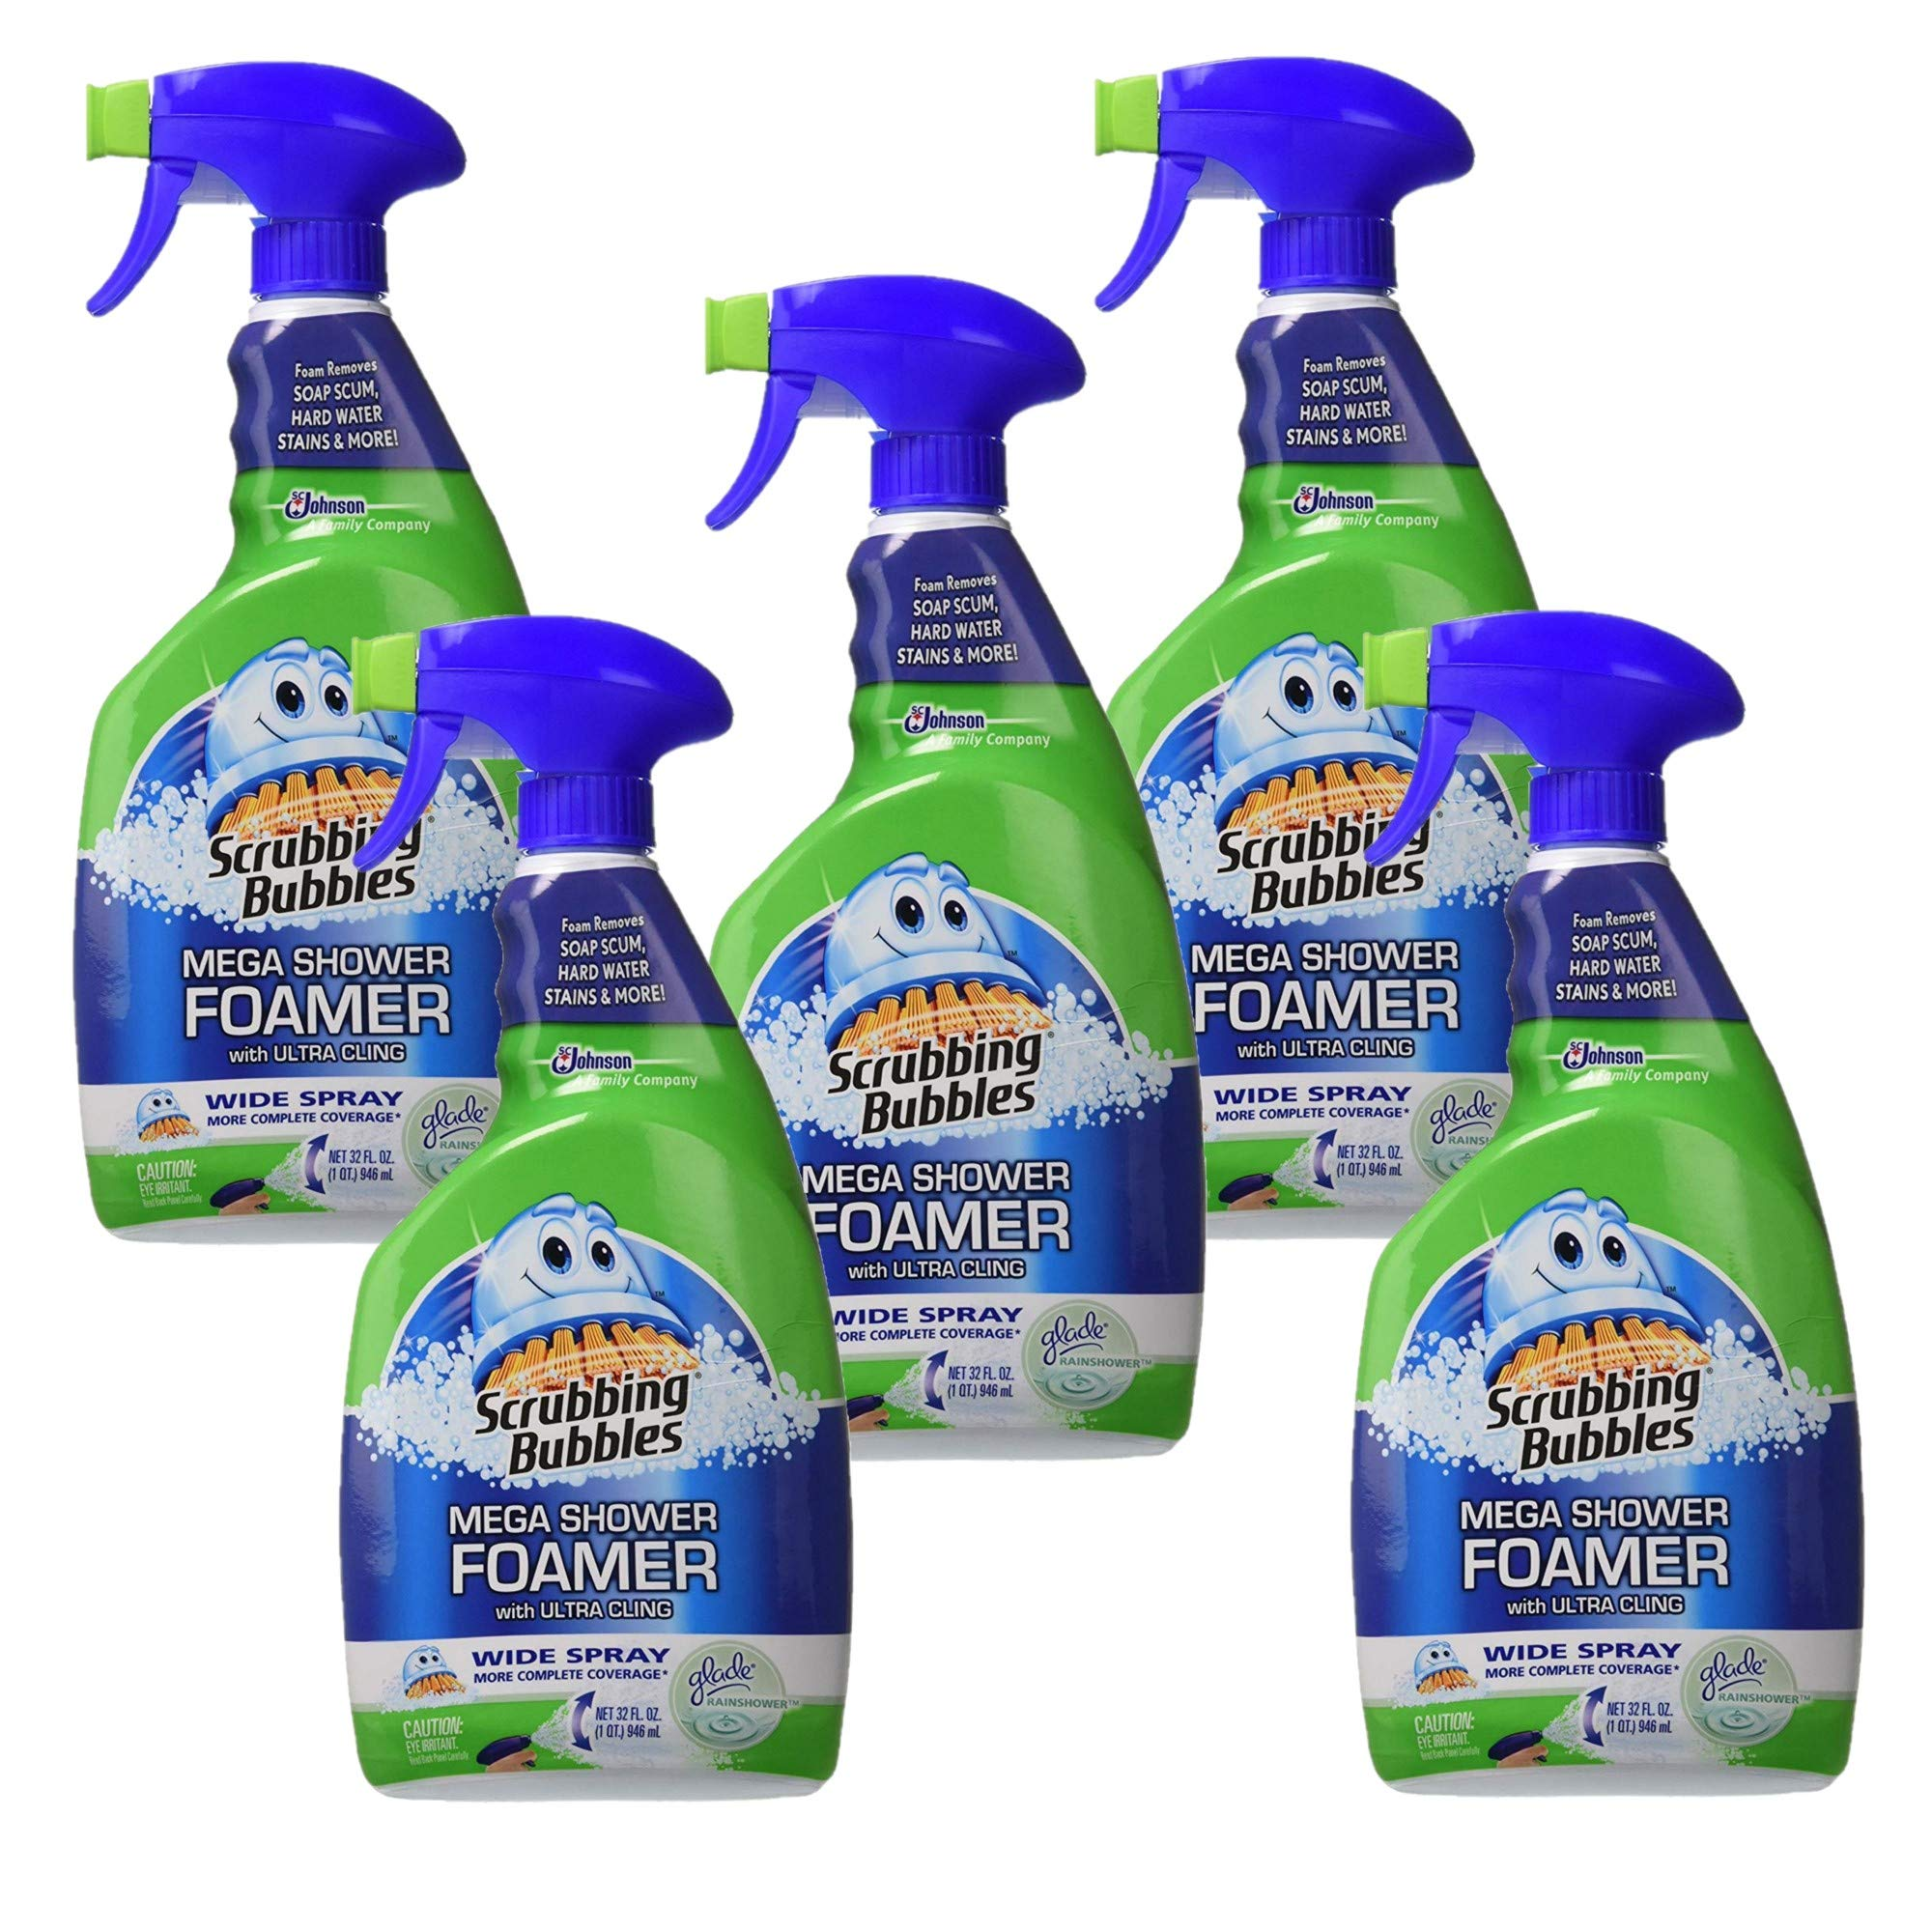 Scrubbing Bubbles Mega Shower Foamer Mousse with Ultra Cling, Wide Spray and Large Jet, Twin Pack, 32 Ounce, Pack of 5 by Scrubbing Bubbles